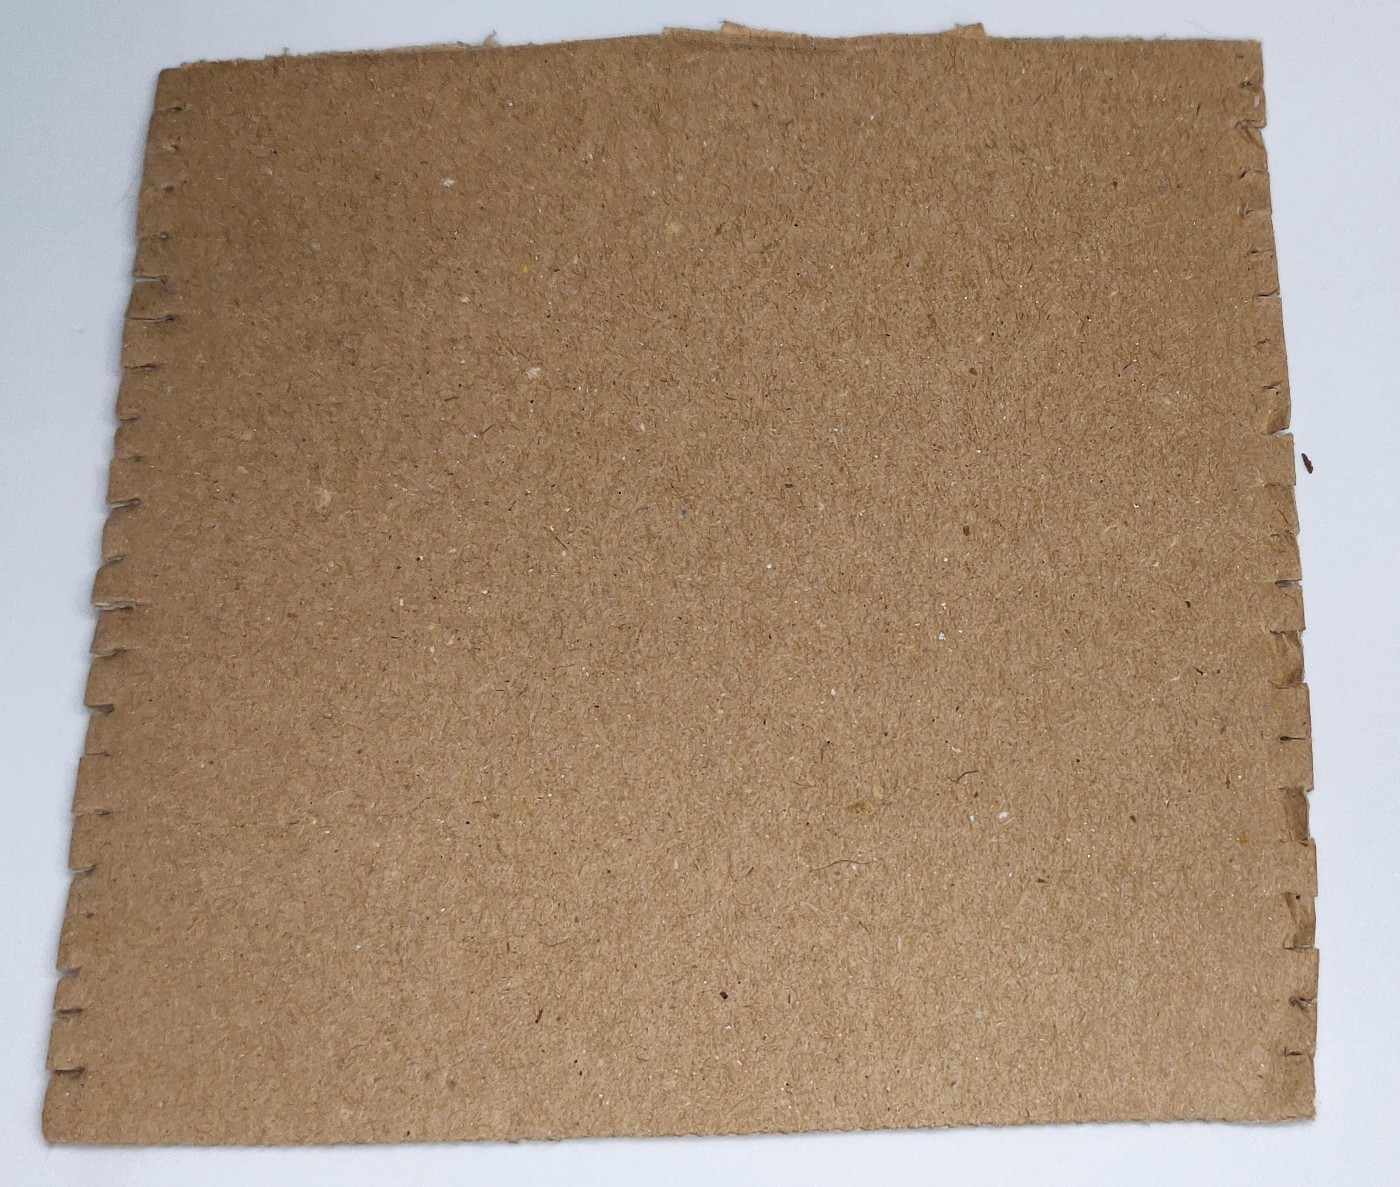 """A square of cardboard with shallow slits cut every 1/4"""" on opposite edges to create a simple cardboard loom"""